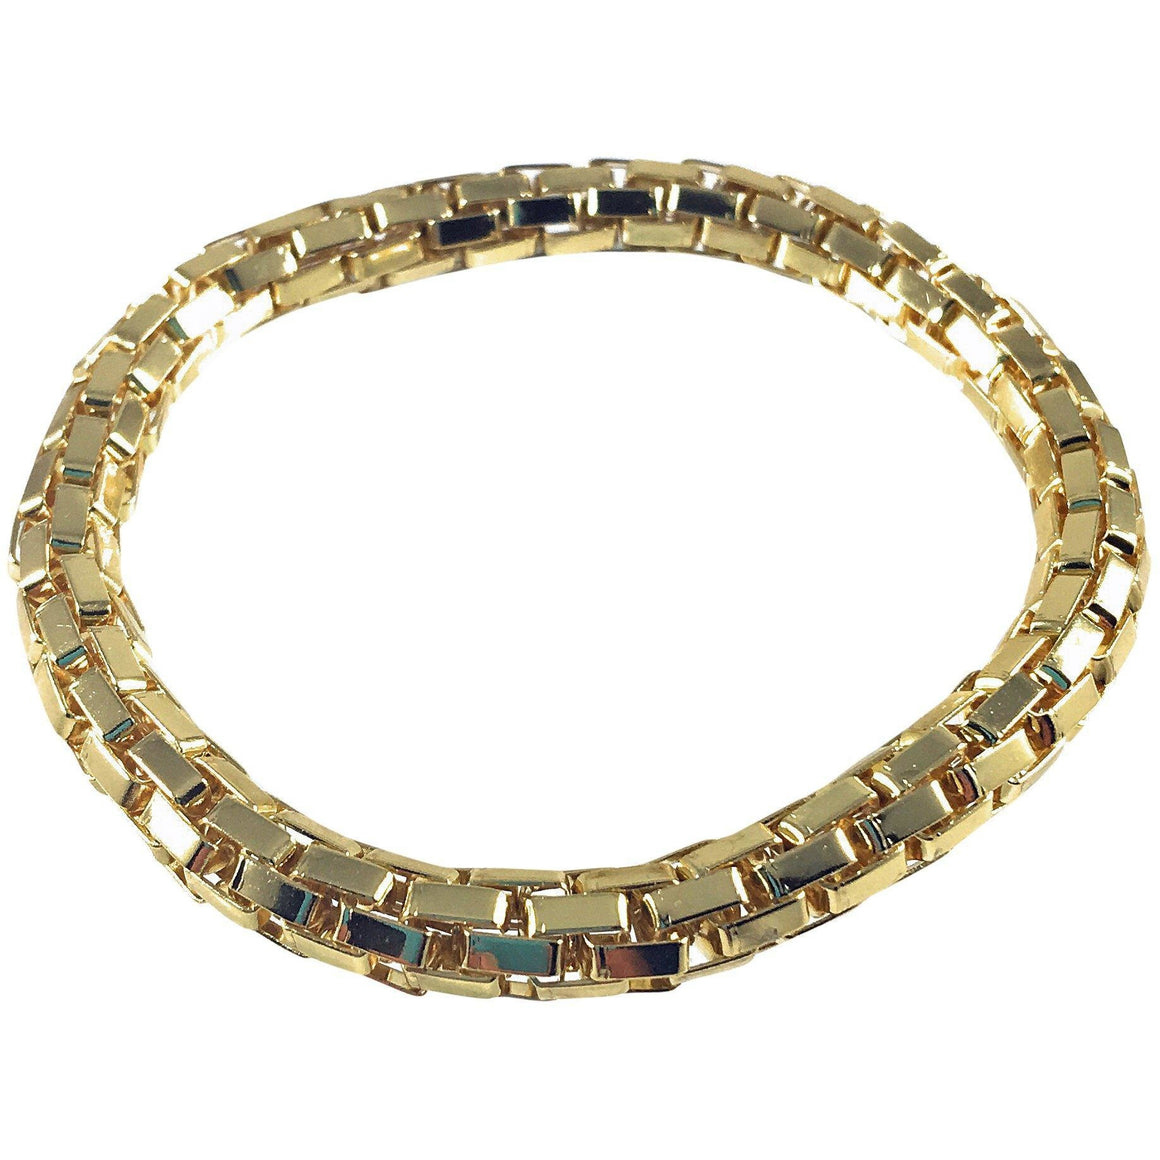 12K Gold Filled Mesh Chain Stretch Bracelet (Gold 6mm Box Links) - Beads and Dangles